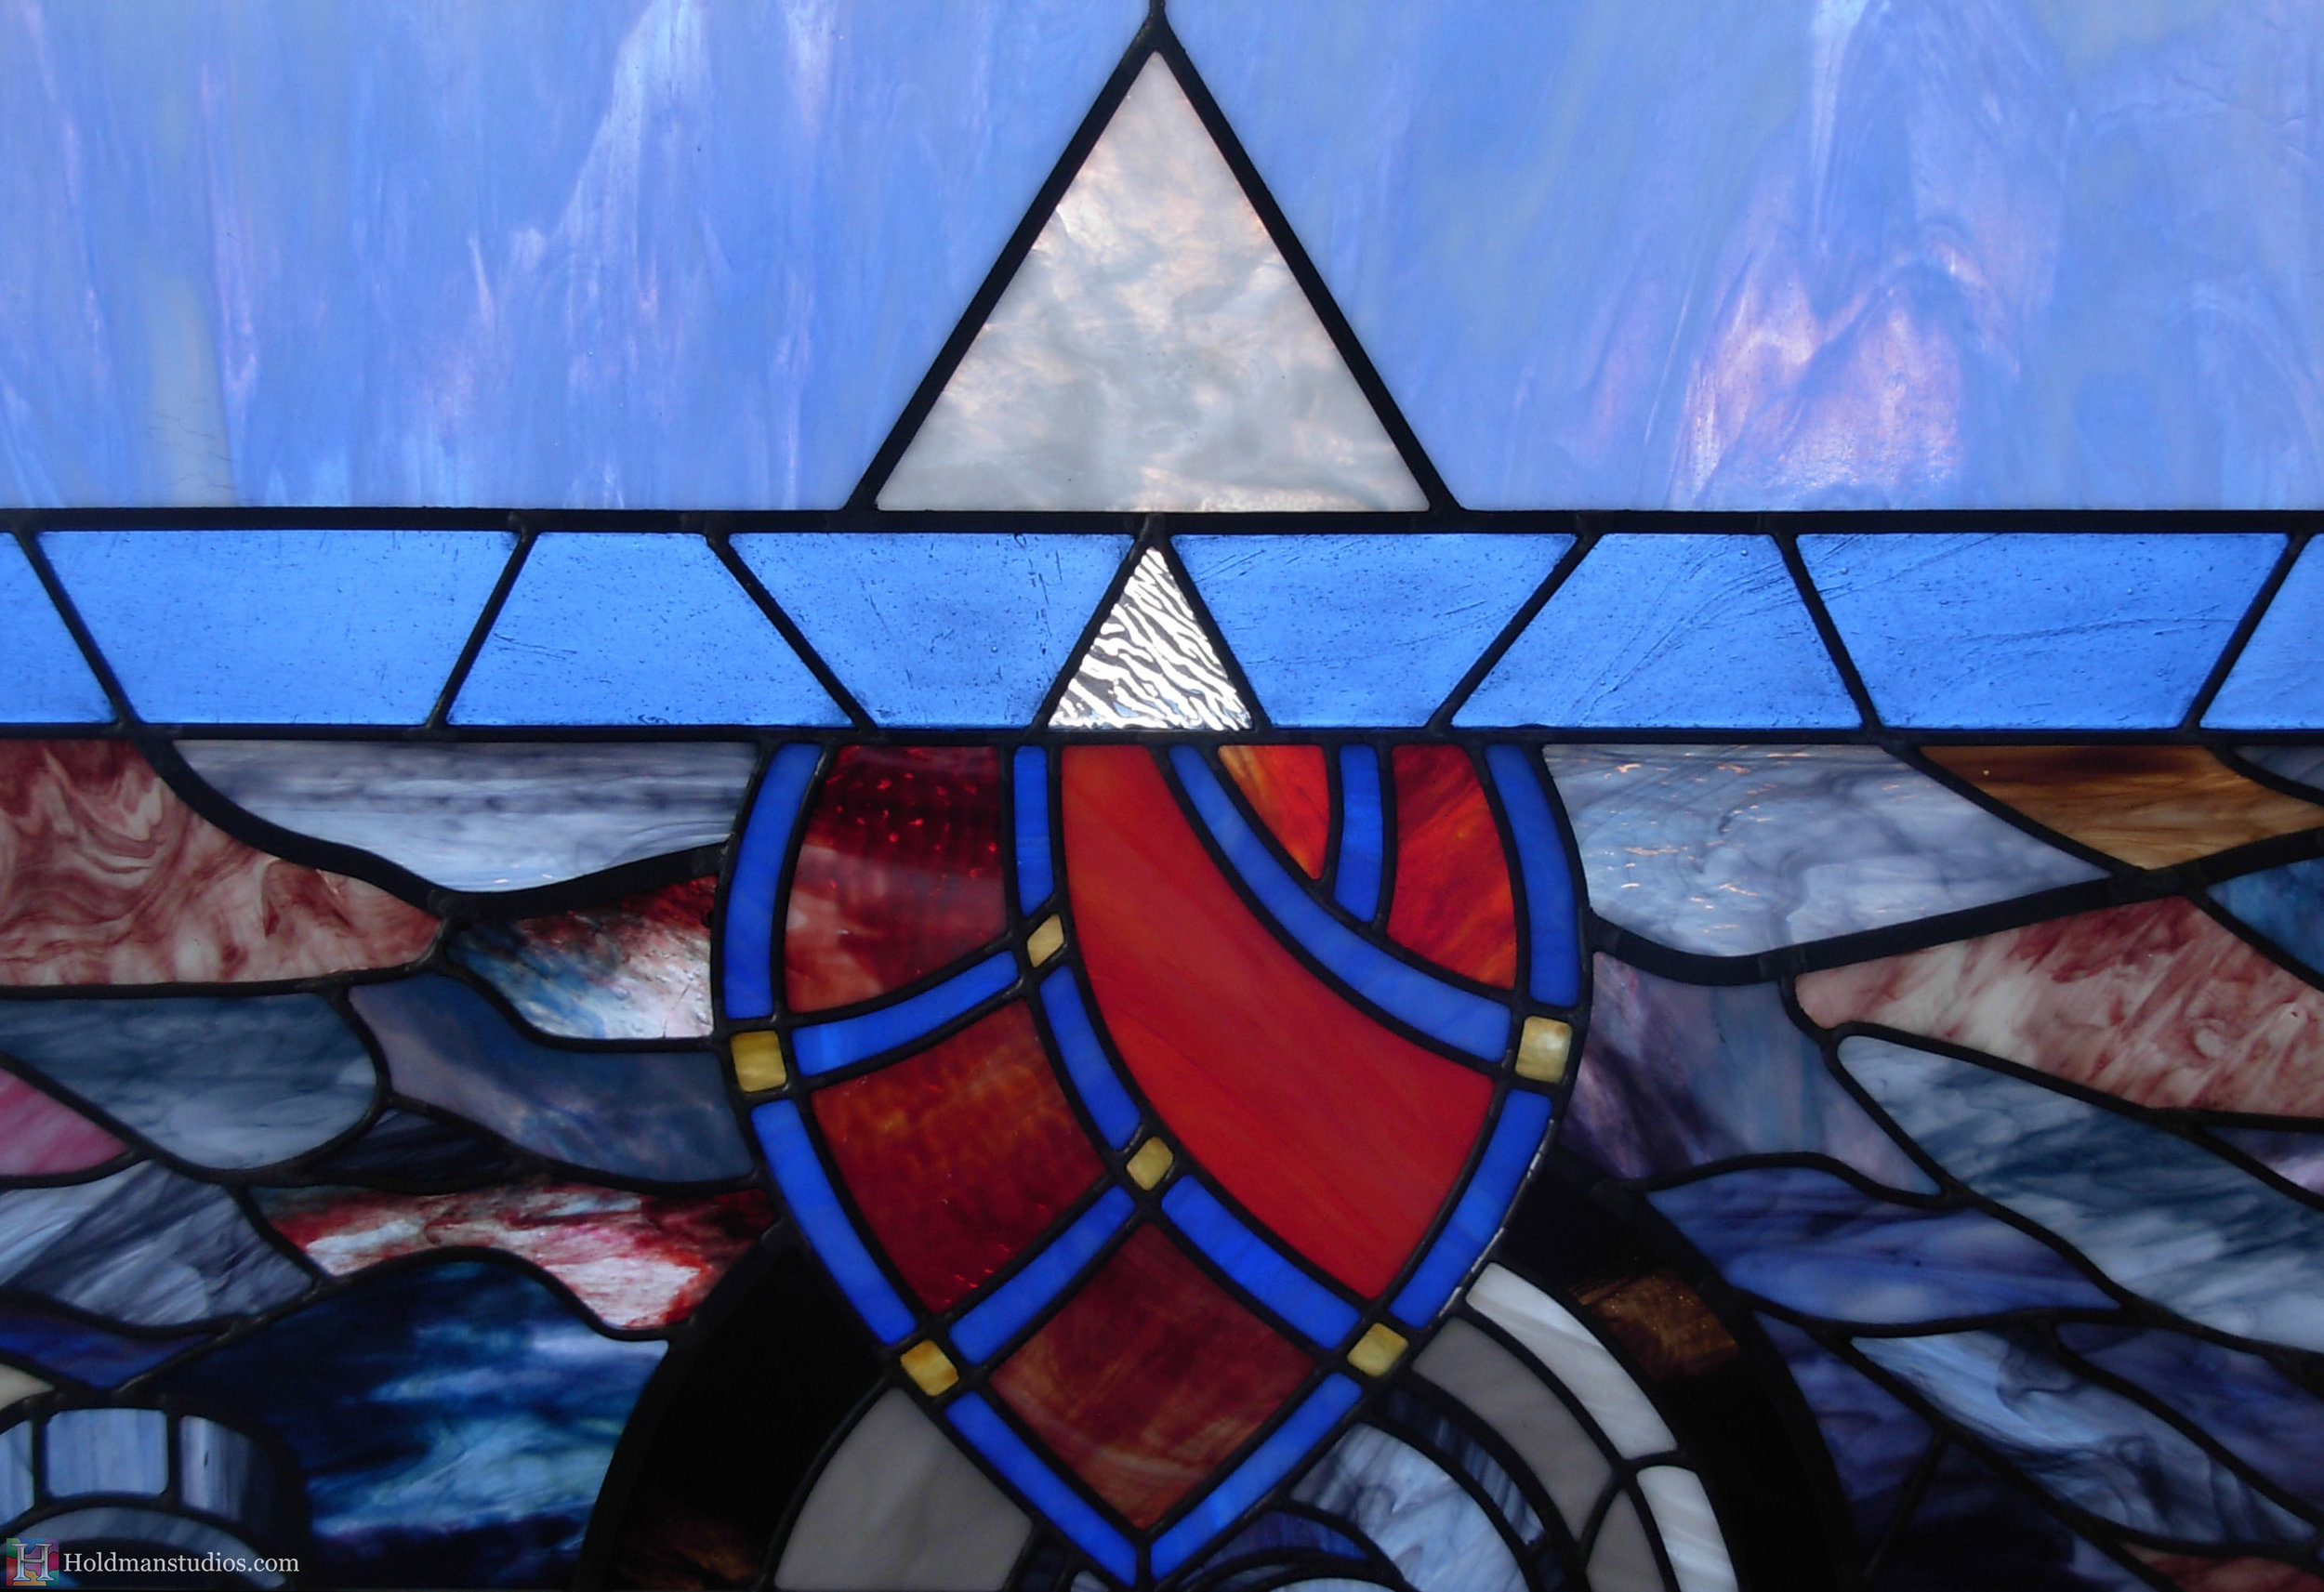 Holdman-studios-stained-art-glass-window-scera-theater-car-art-deco-artist-scetch-fixed-crop.jpg